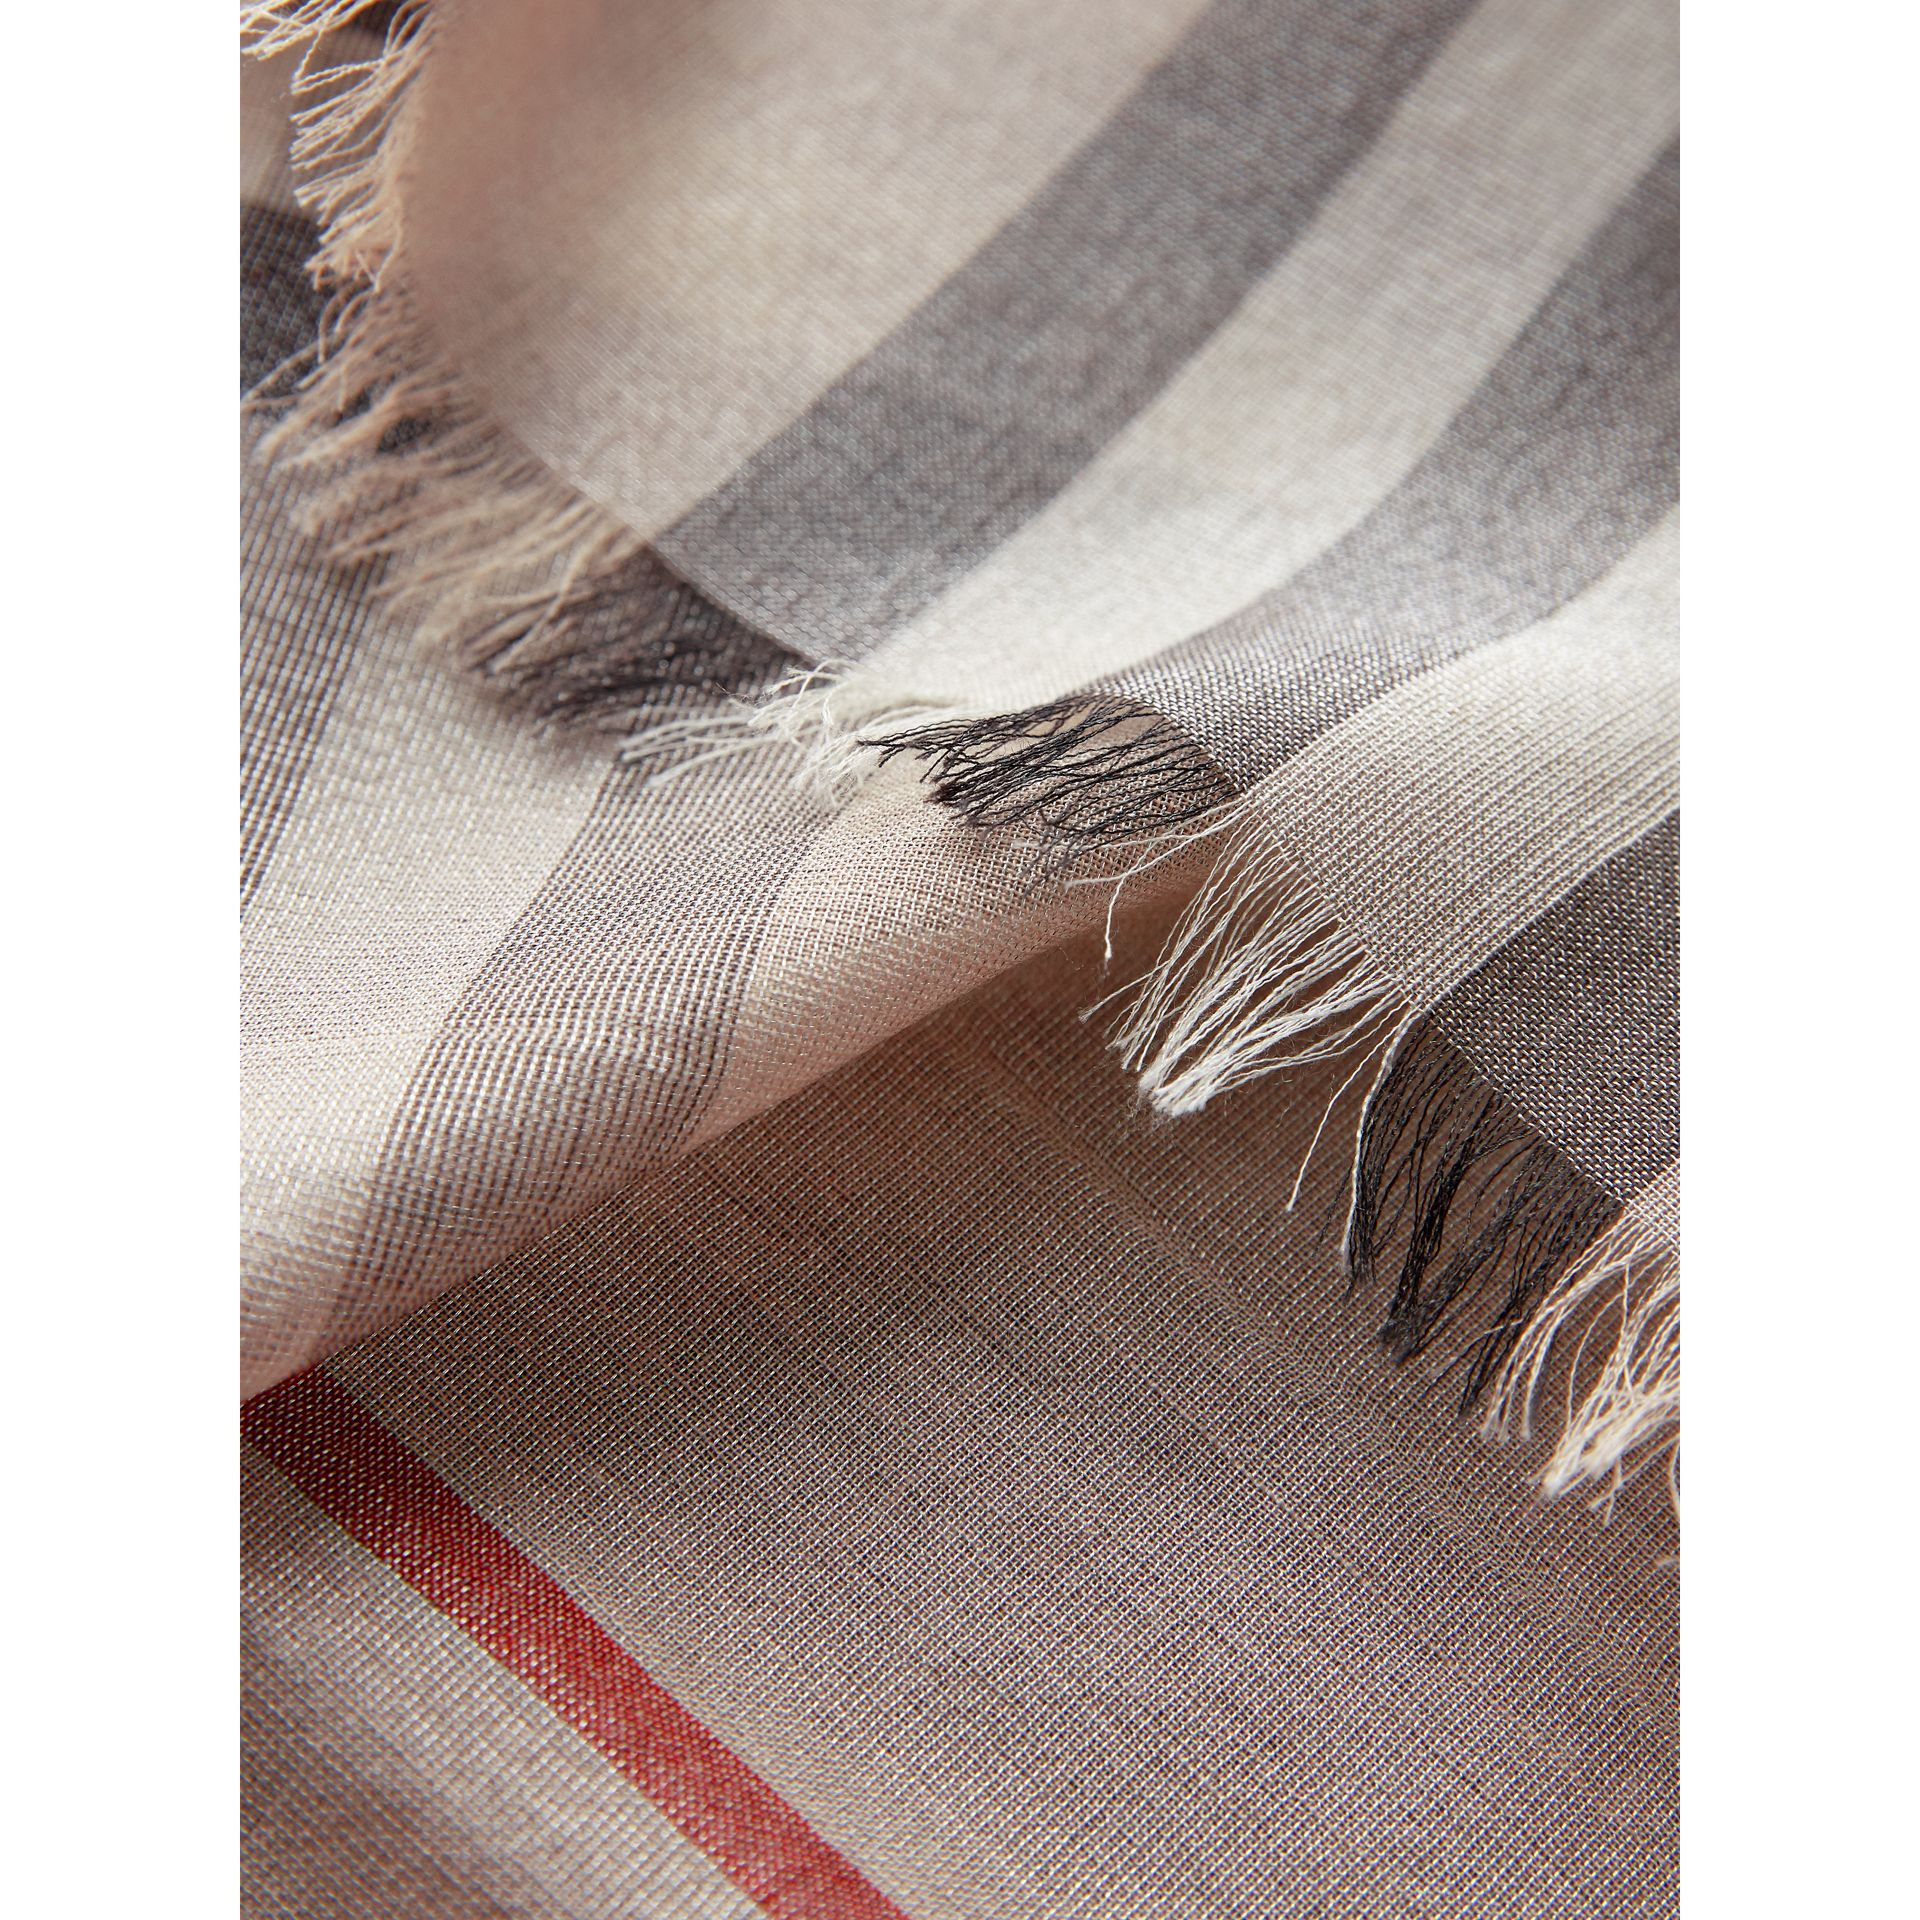 Metallic Check Silk and Wool Scarf in Stone/ Silver - Women | Burberry - gallery image 2